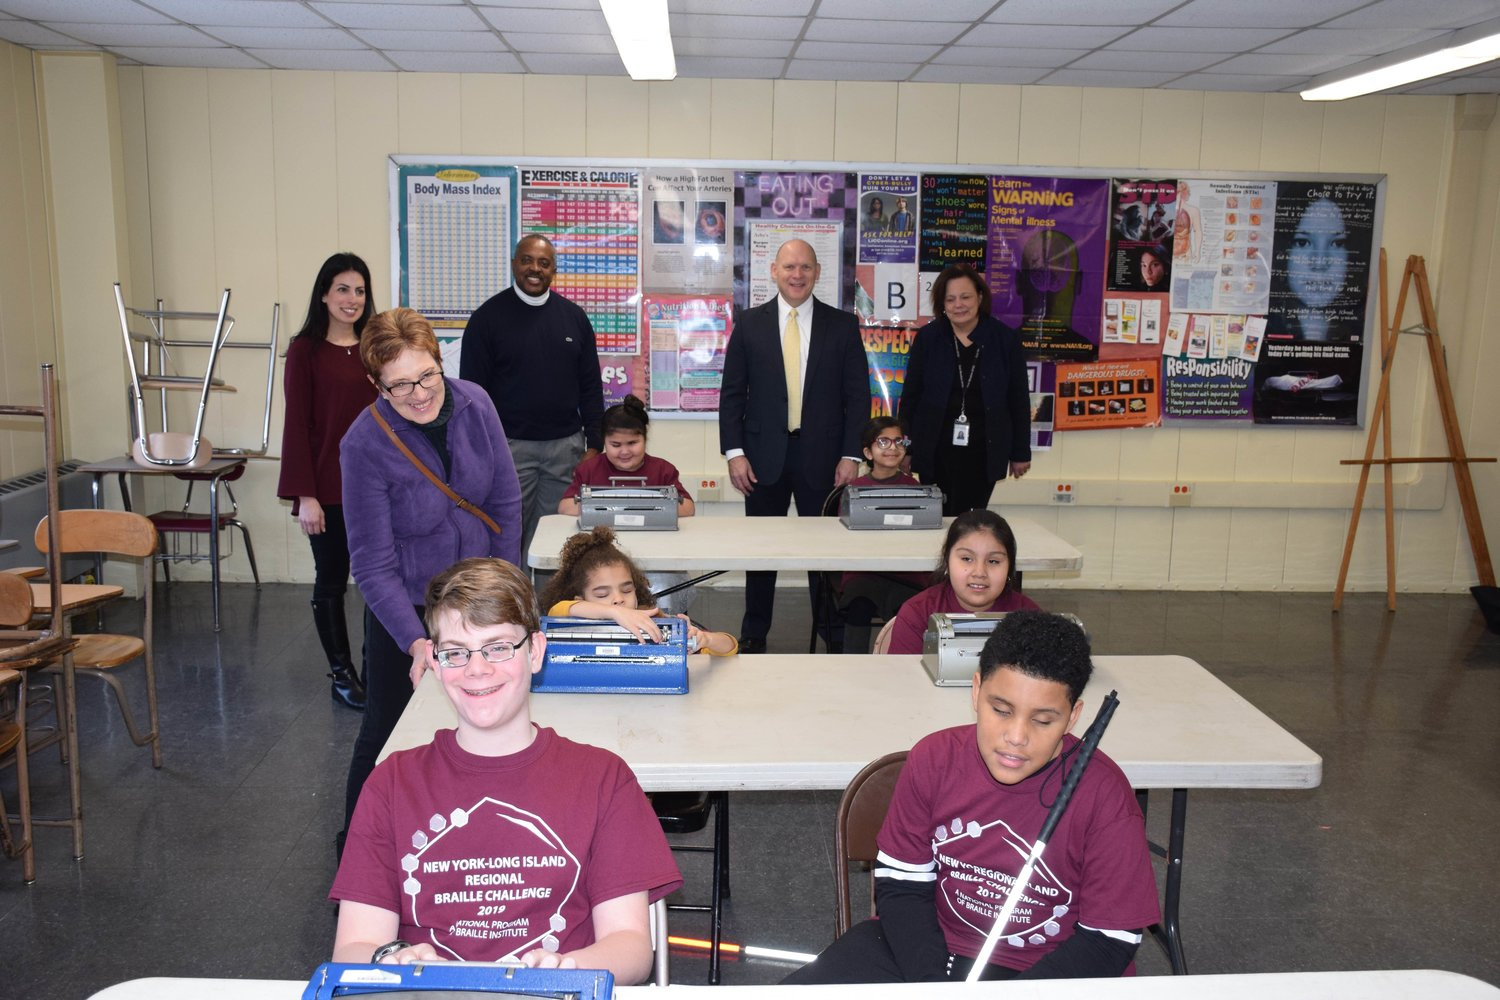 East Meadow District officials encouraged students at the 12th annual Long Island Regional Braille Challenge at W.T. Clarke High School on Feb. 2.